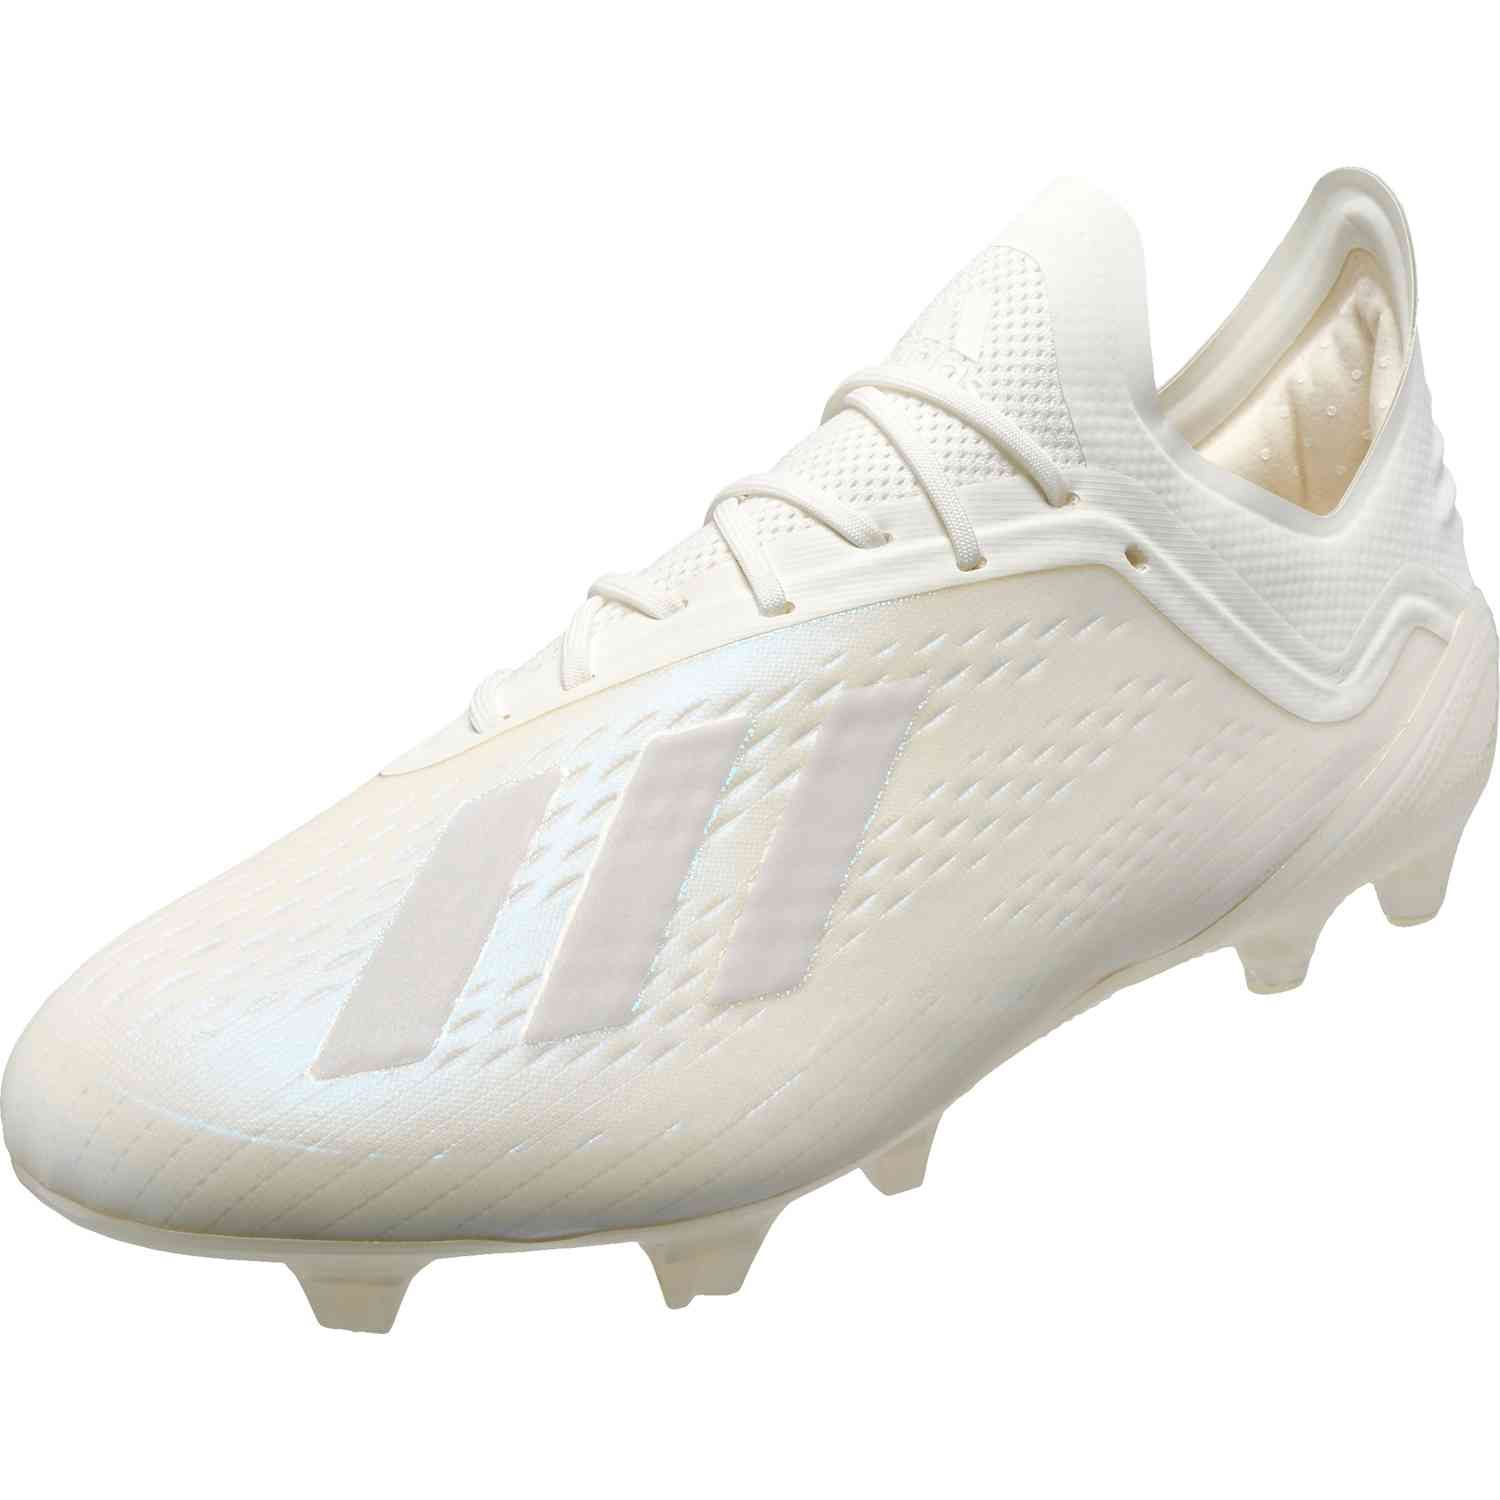 on sale 7eae9 13f13 Spectral Mode pack adidas X 18.1 Flying off the shelves at SoccerPro now.